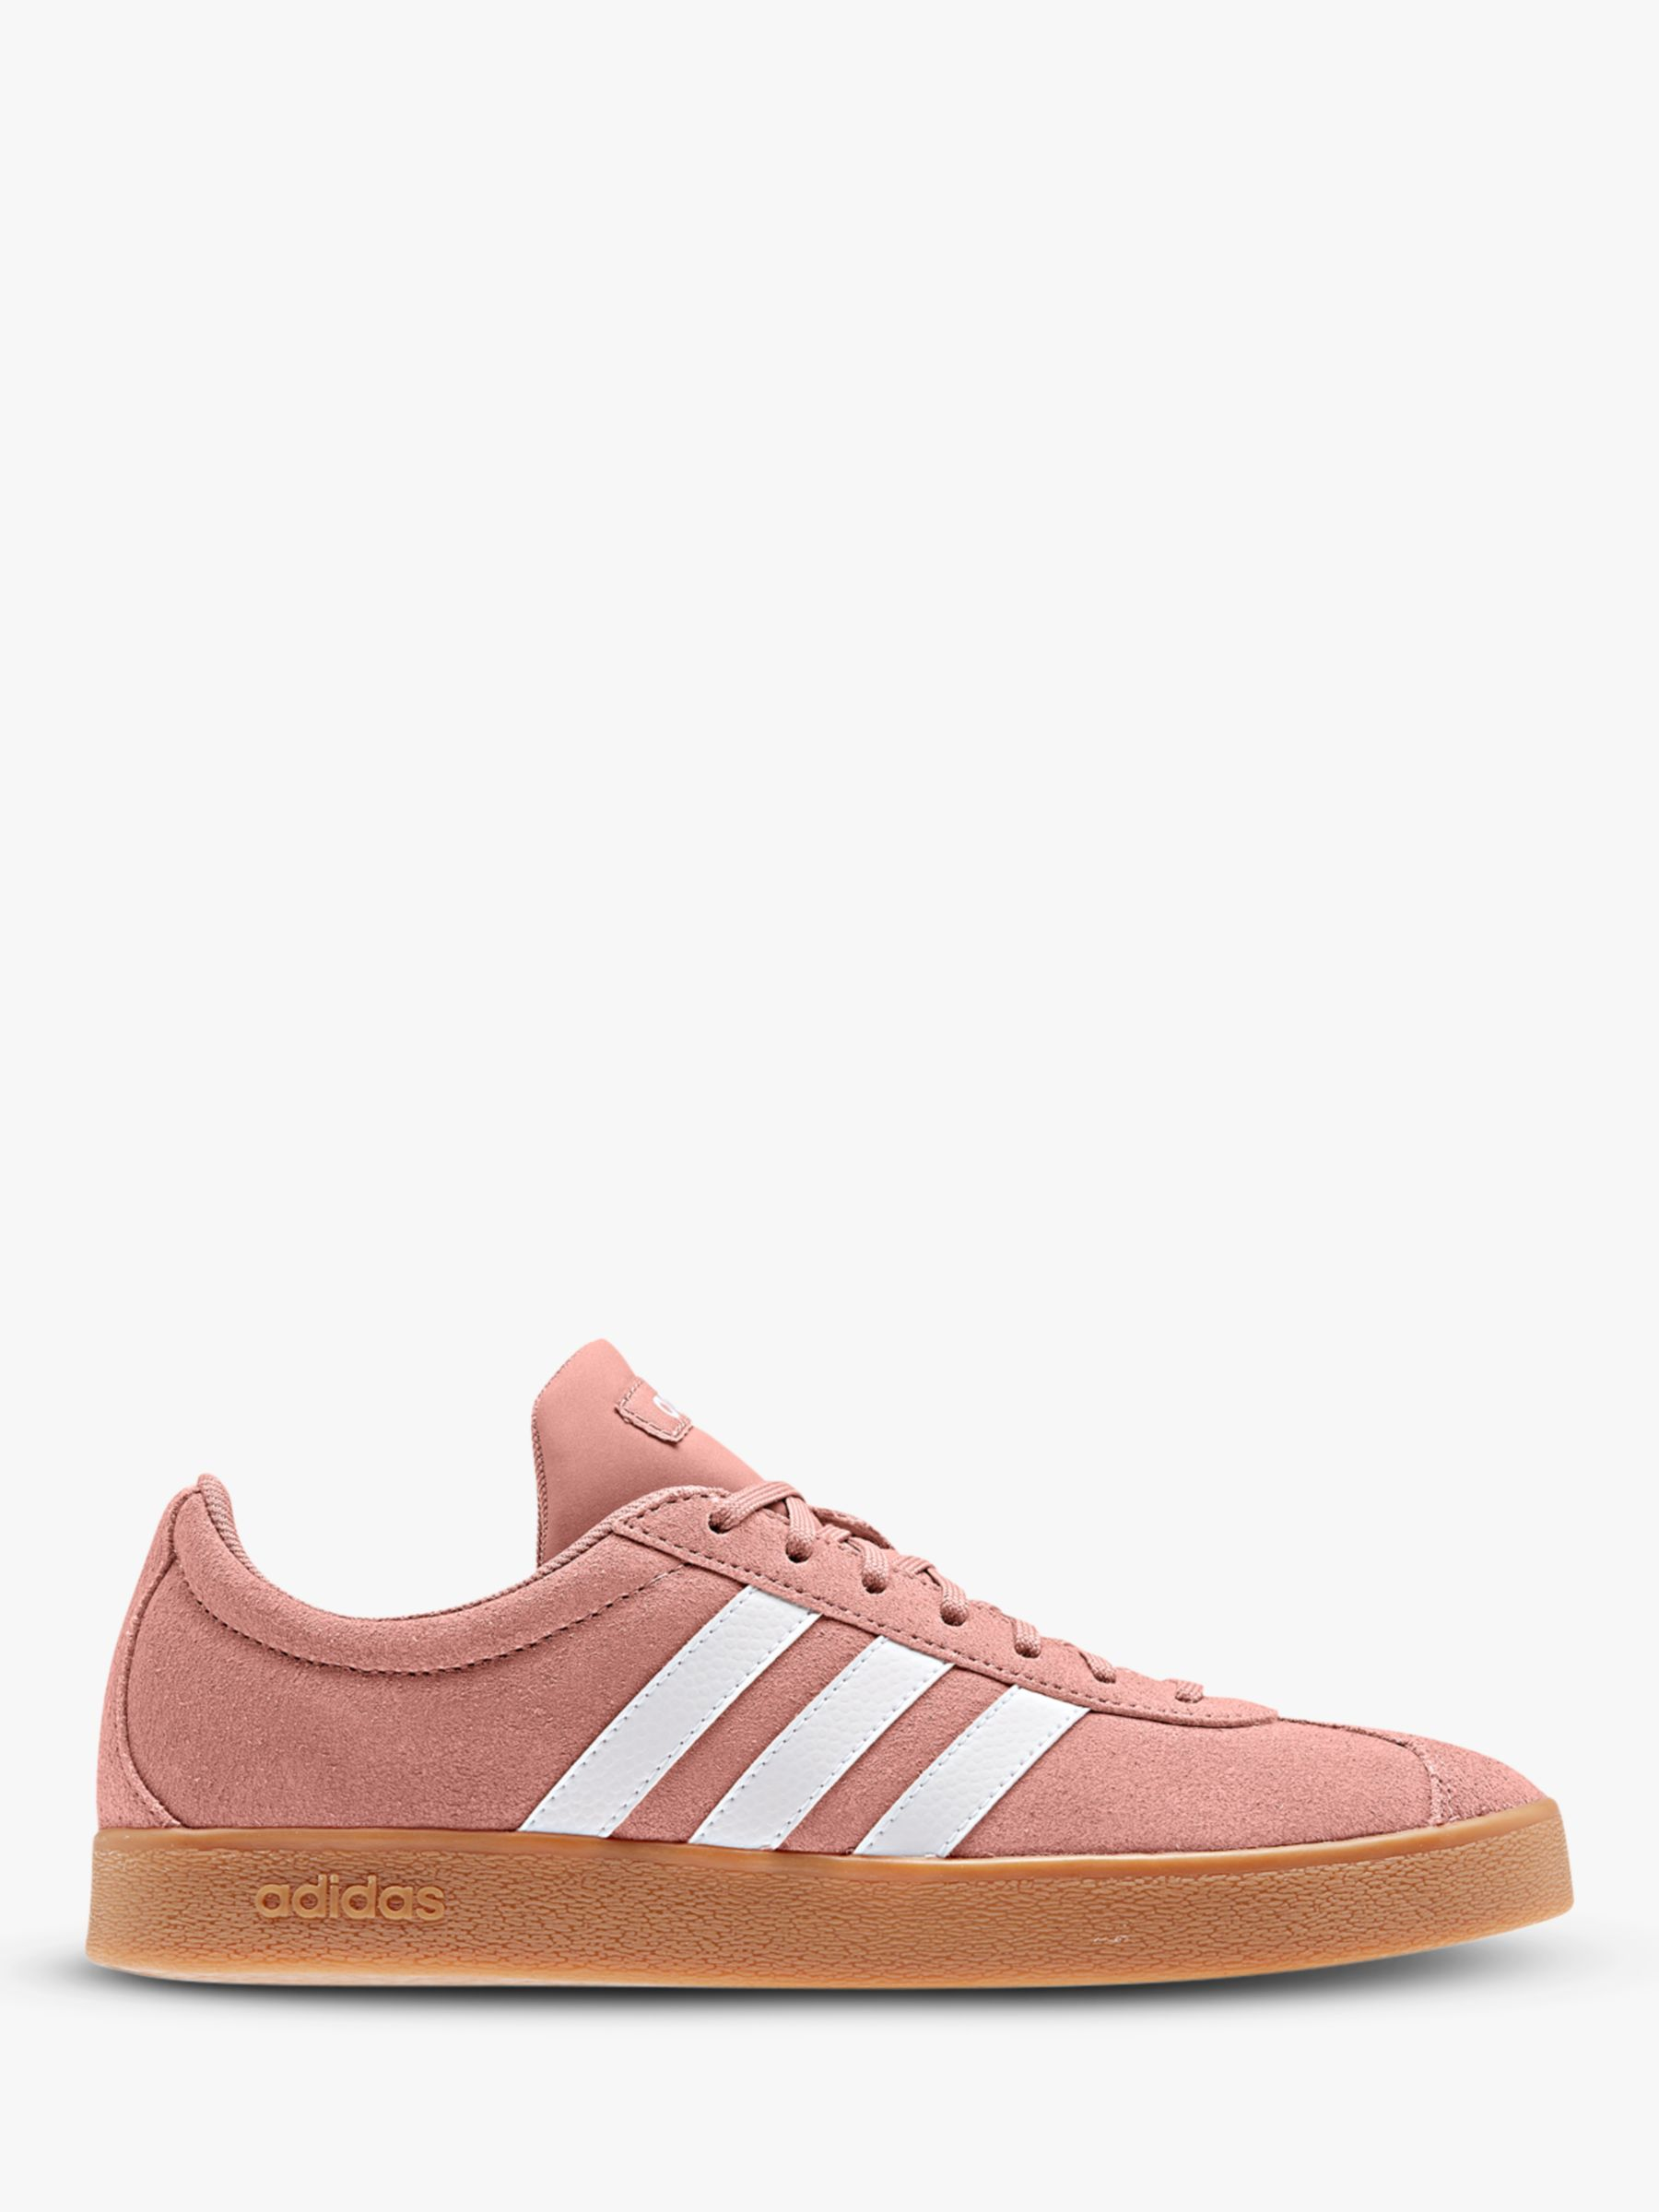 Campeonato represa juntos  adidas VL Court 2.0 Women's Trainers, Raw Pink/FTWR White at John Lewis &  Partners